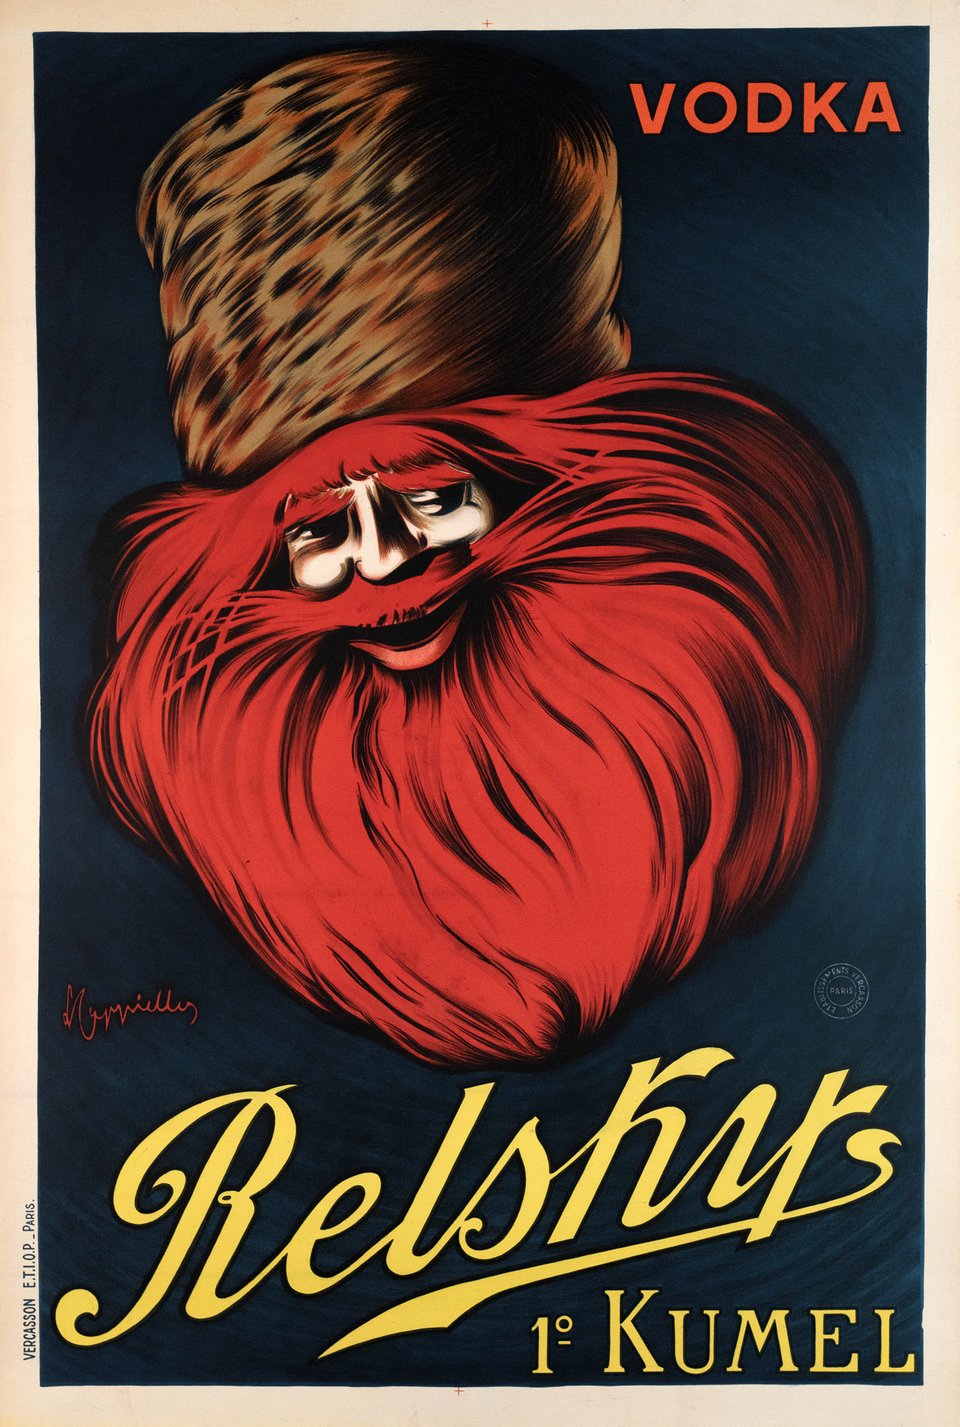 Vodka Relsky – Affiche ancienne – Leonetto CAPPIELLO – 1925